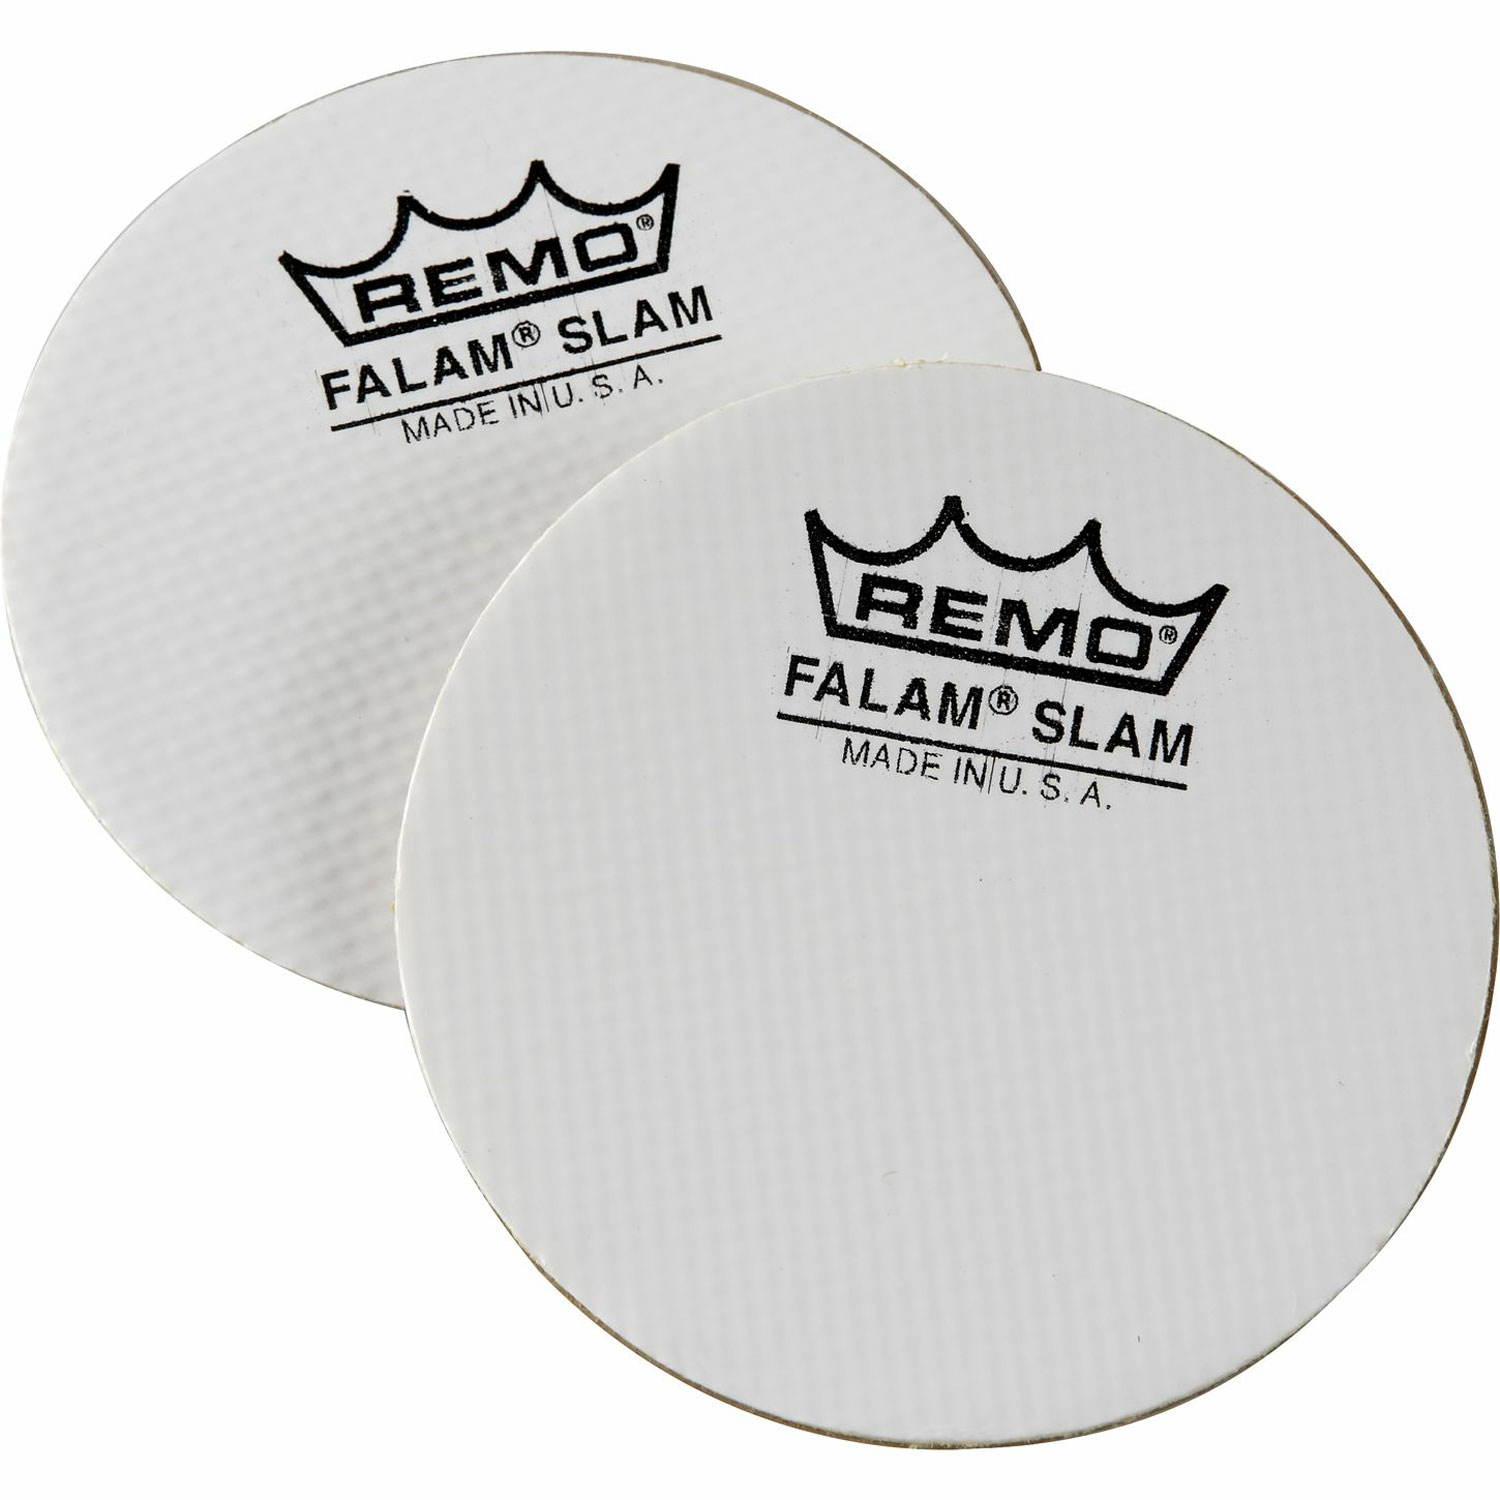 Remo Falam Slam Patch - 2 Pack